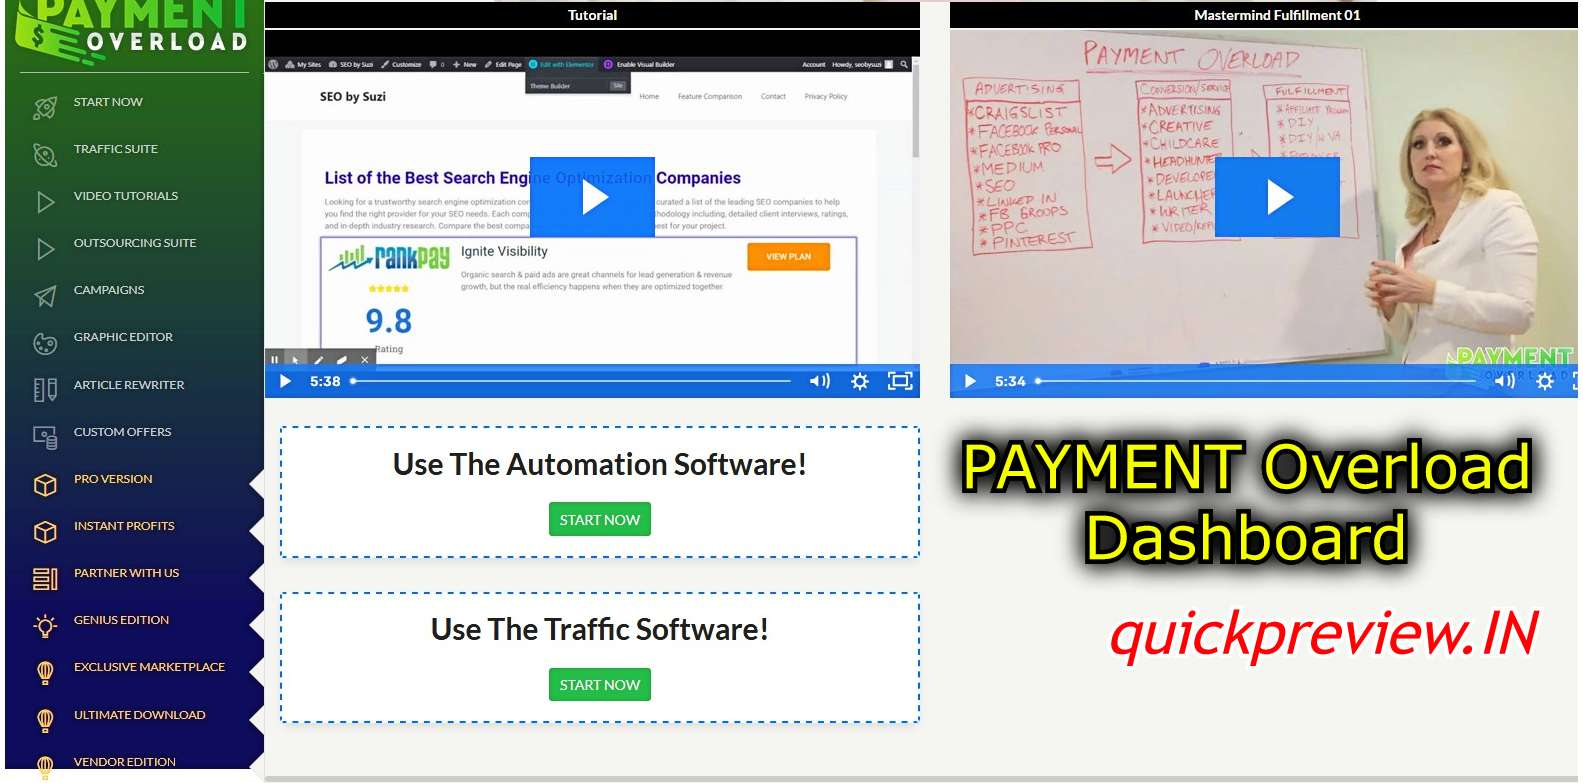 payment overload dashboard